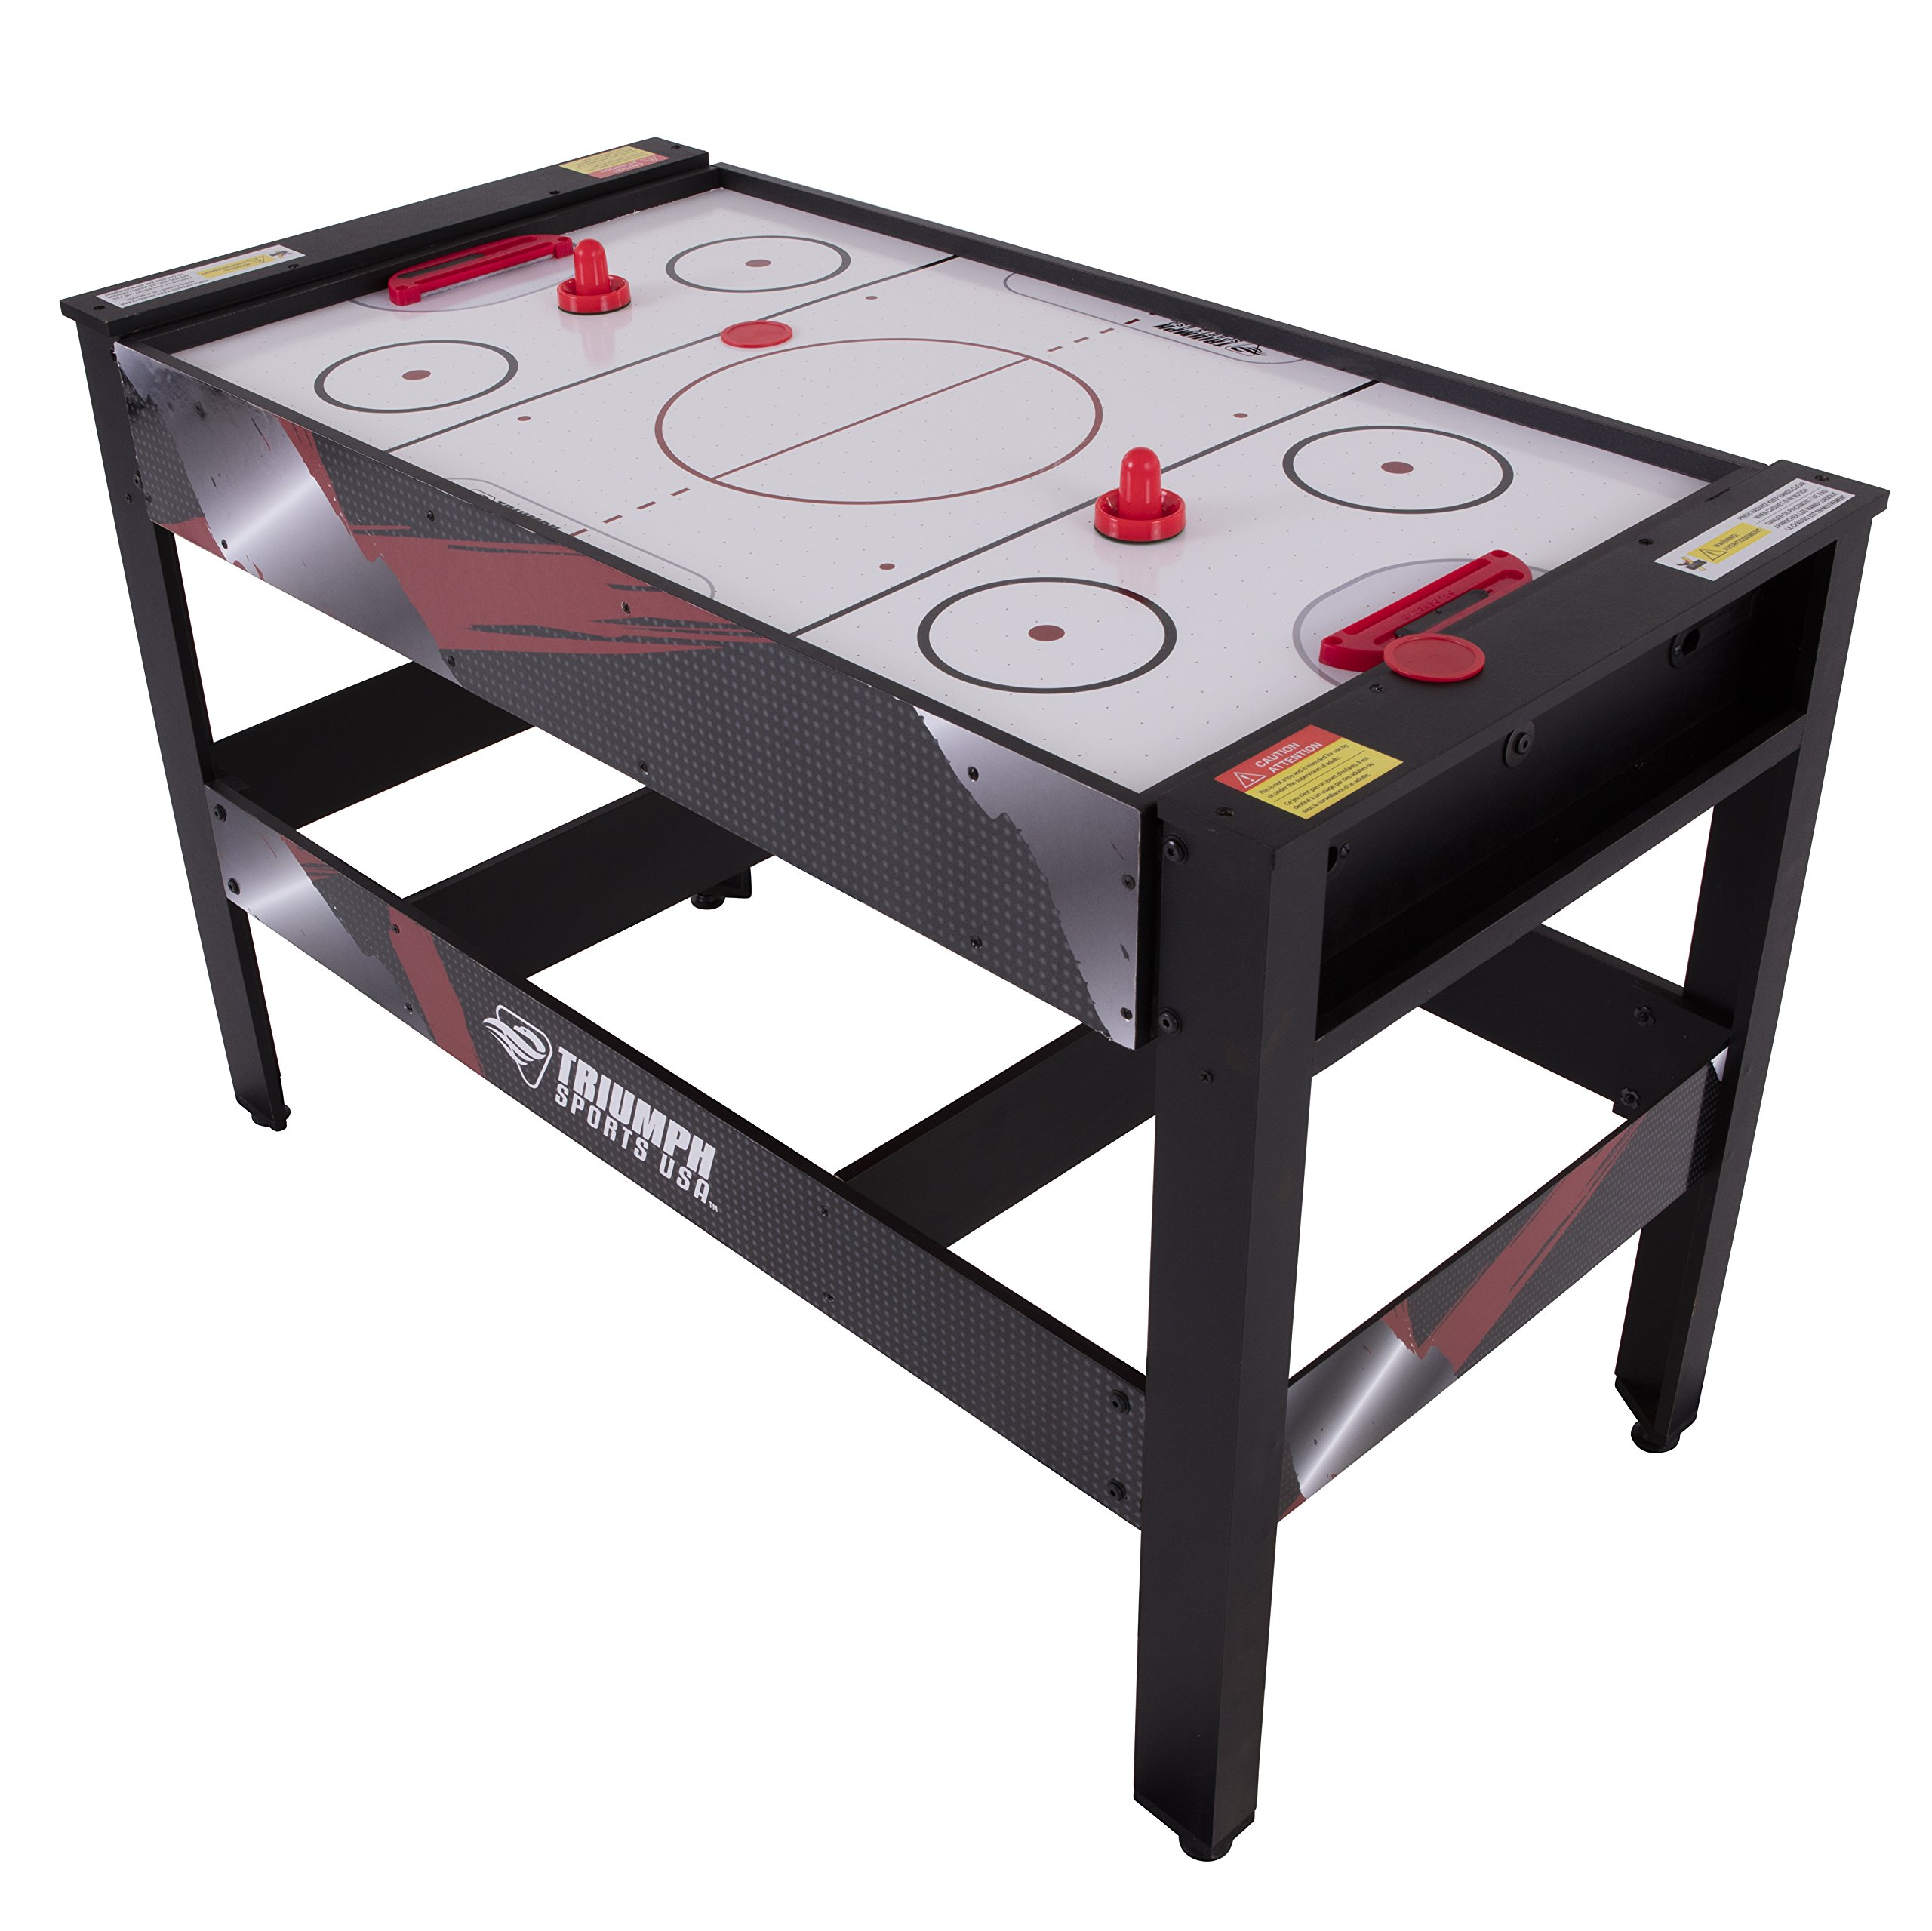 Triumph 4-in-1 Swivel Multigame Table by Triumph